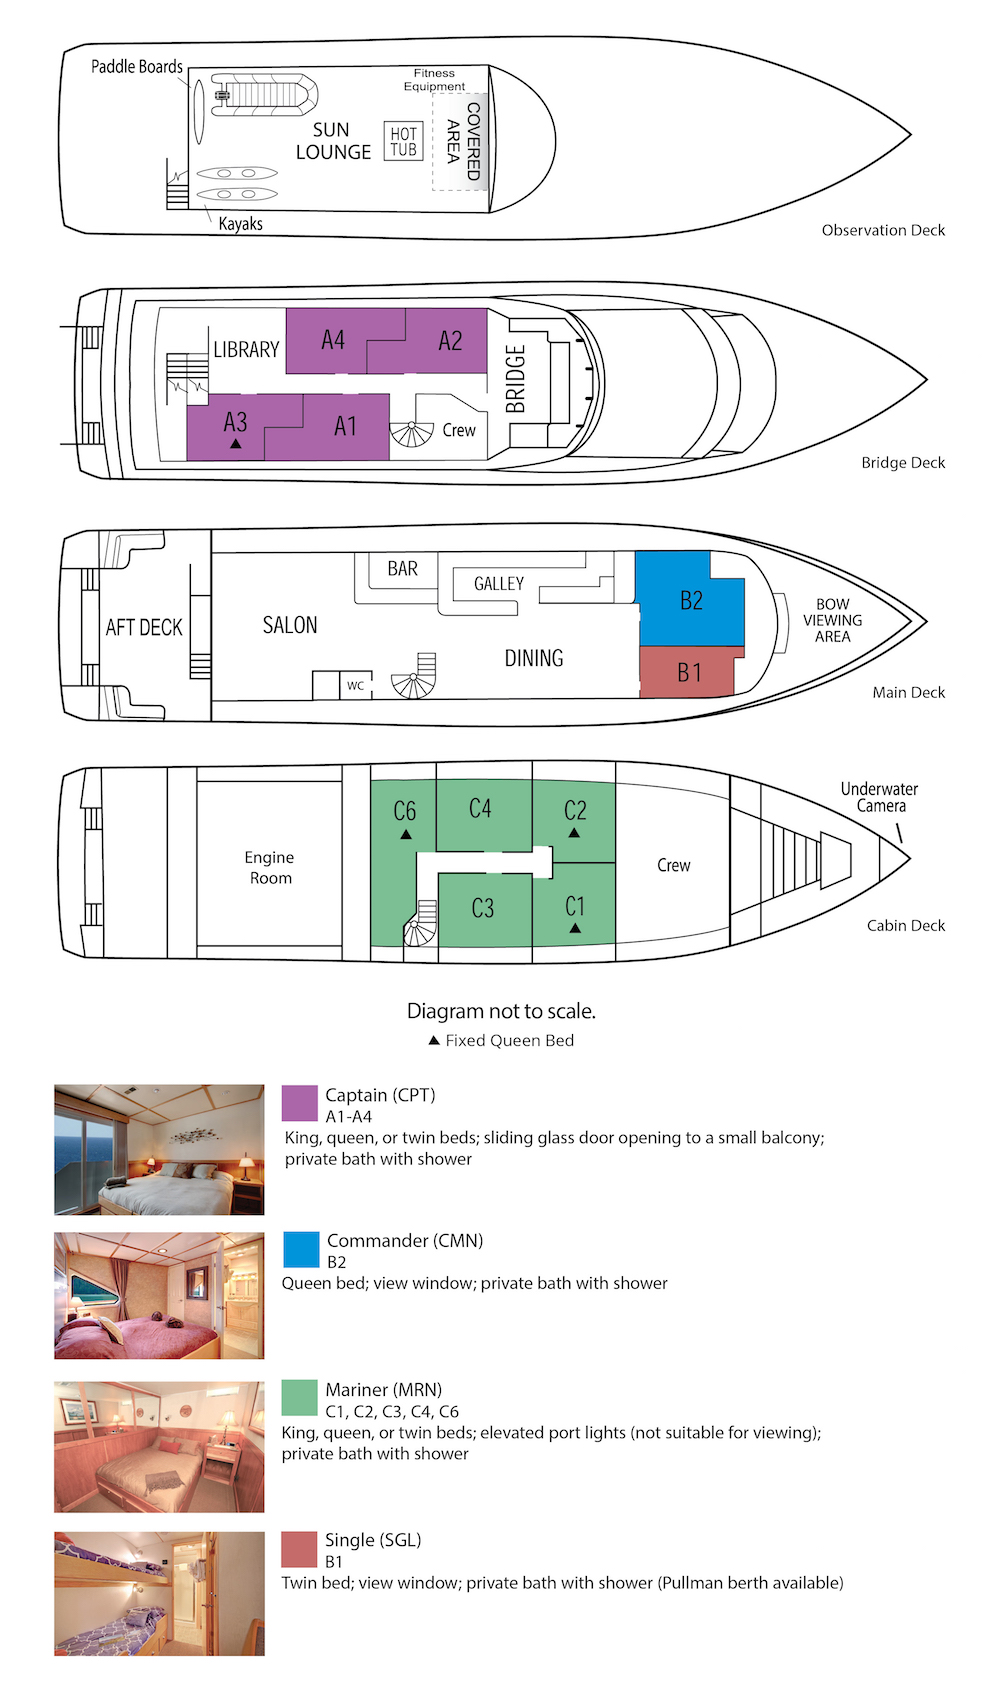 Safari Quest Deck Plan floorplan